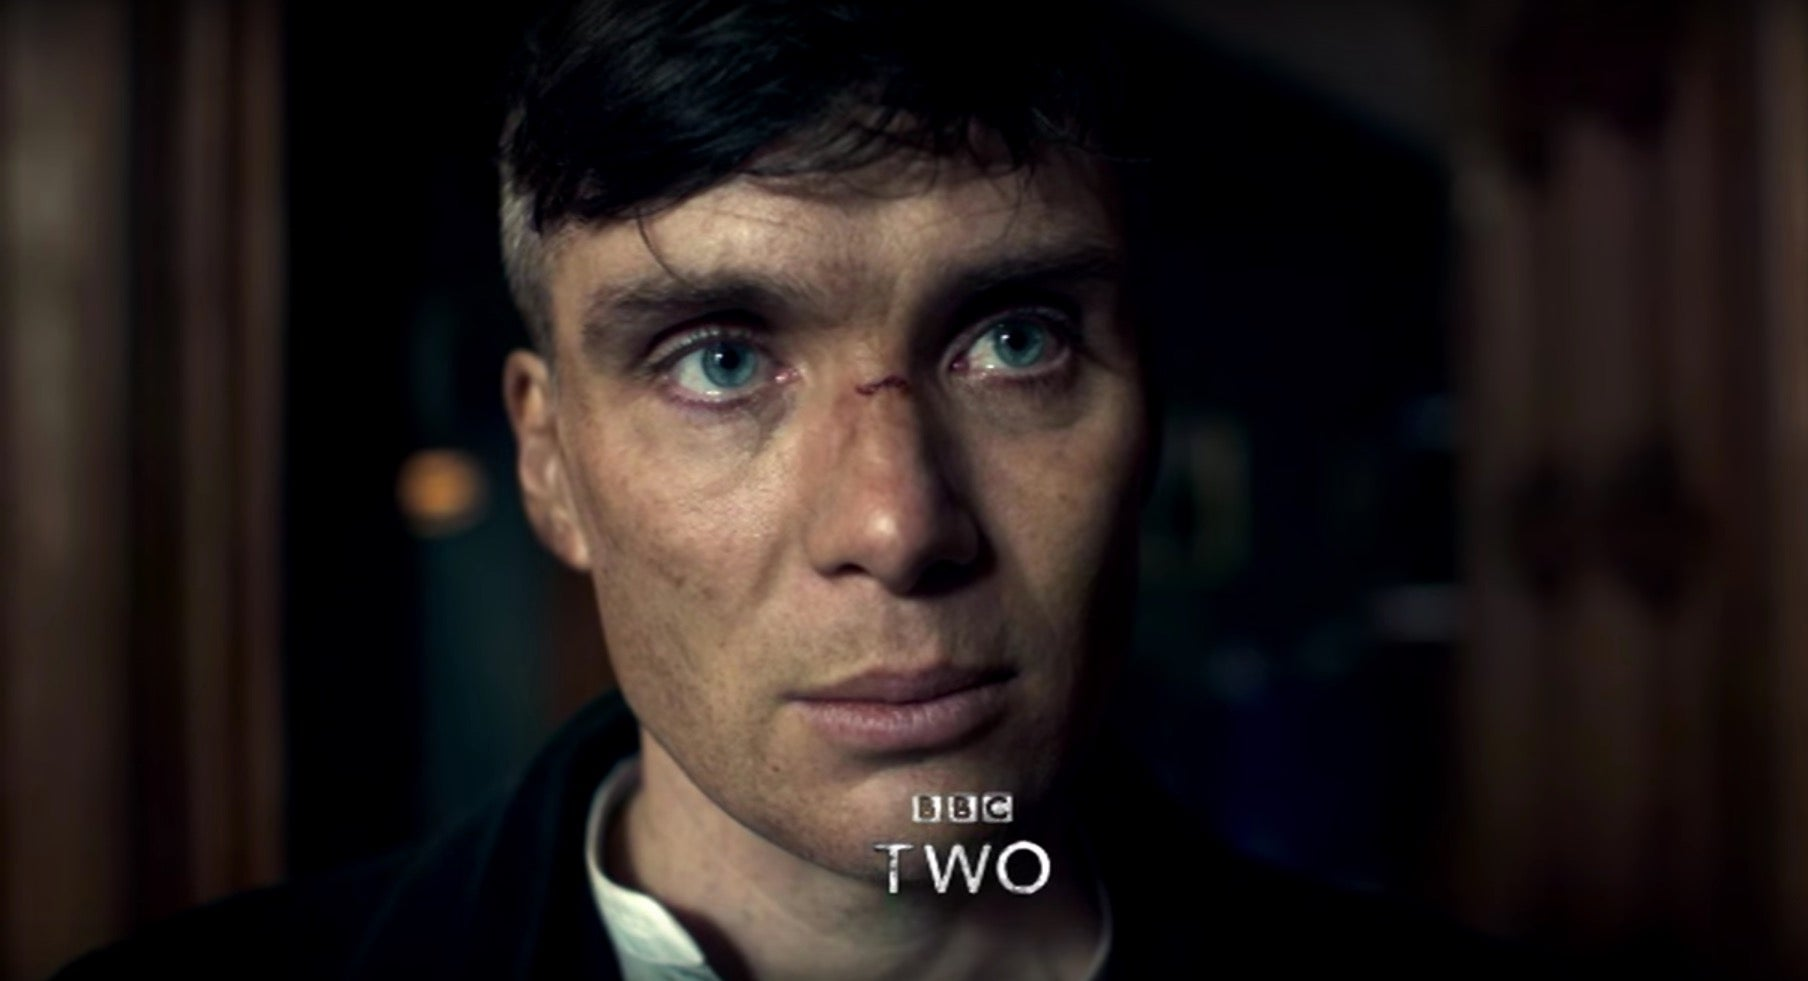 peaky blinders season 3 release date Videos peaky blinders | series 3 | tommy shelby 61k 874 cillian murphy wins best actor - drama at the iftas for peaky blinders 42k 38k who the fk am i 15k 32k see all photos image may contain: one or more people and text image may contain: 3 people, text image may contain: 1 person, text see all.